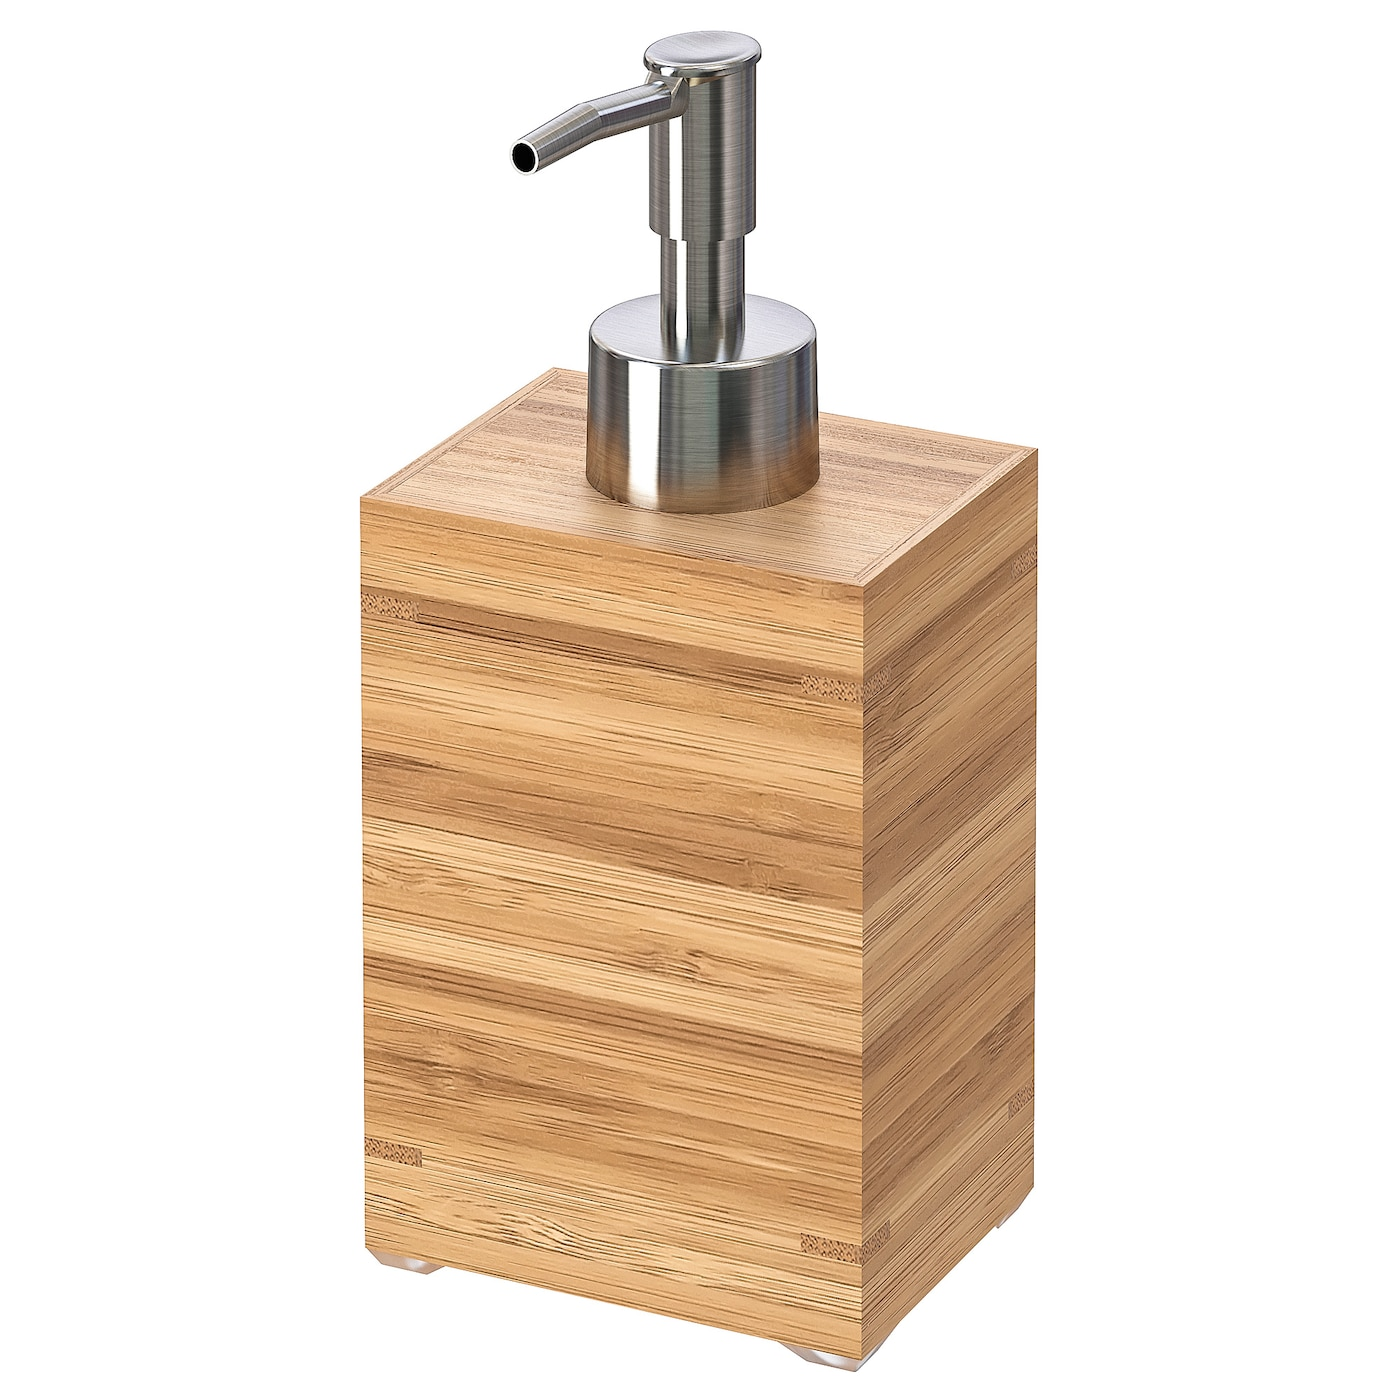 IKEA DRAGAN soap dispenser Bamboo is a hardwearing natural material.